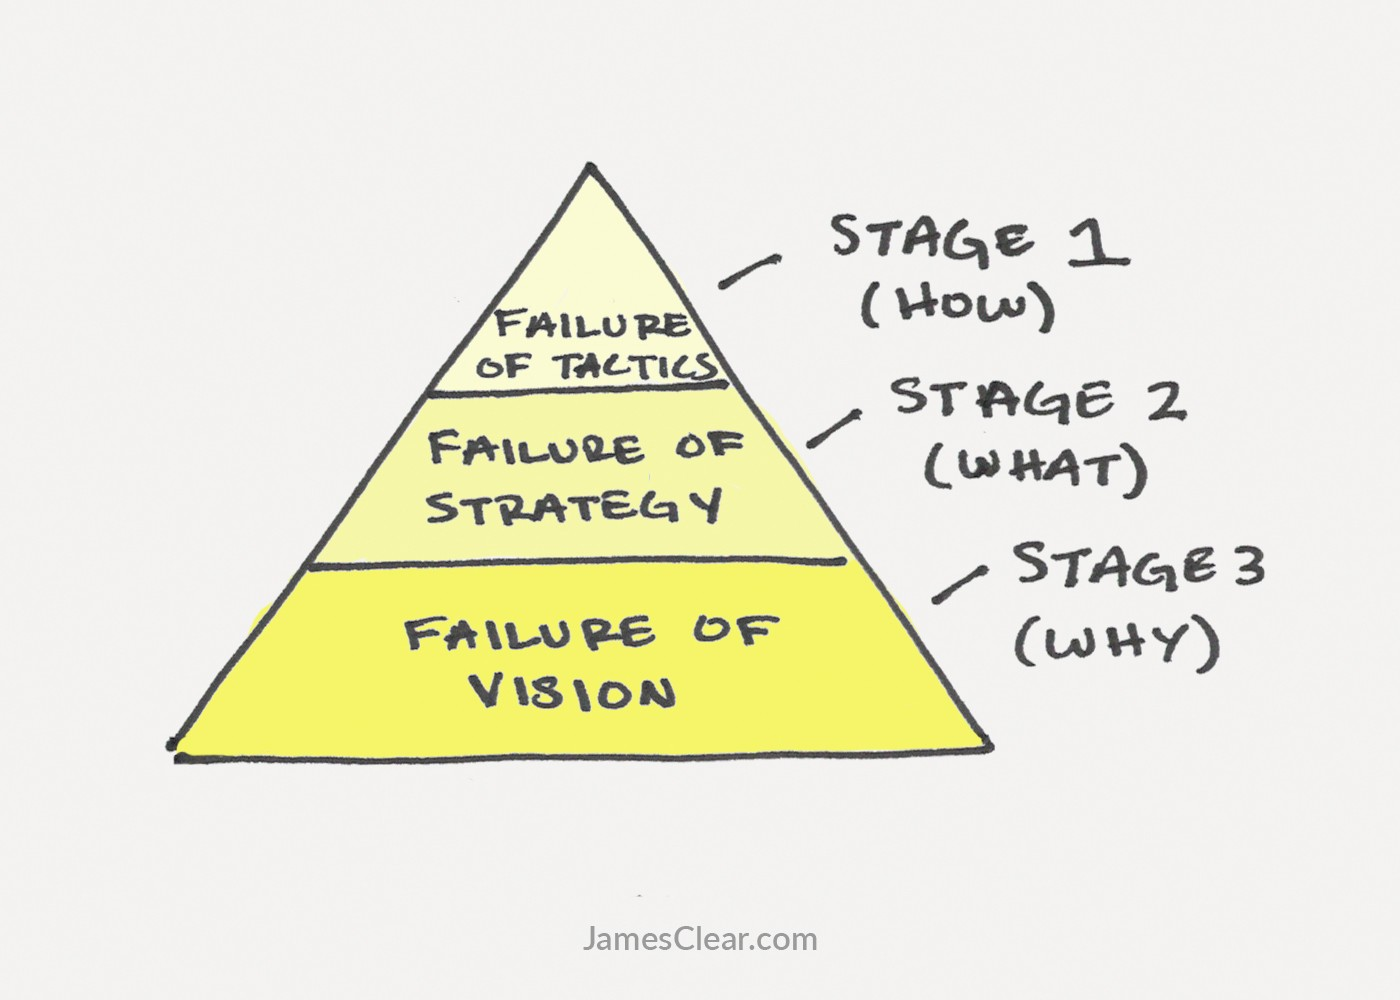 stages-of-failure-explained.jpg